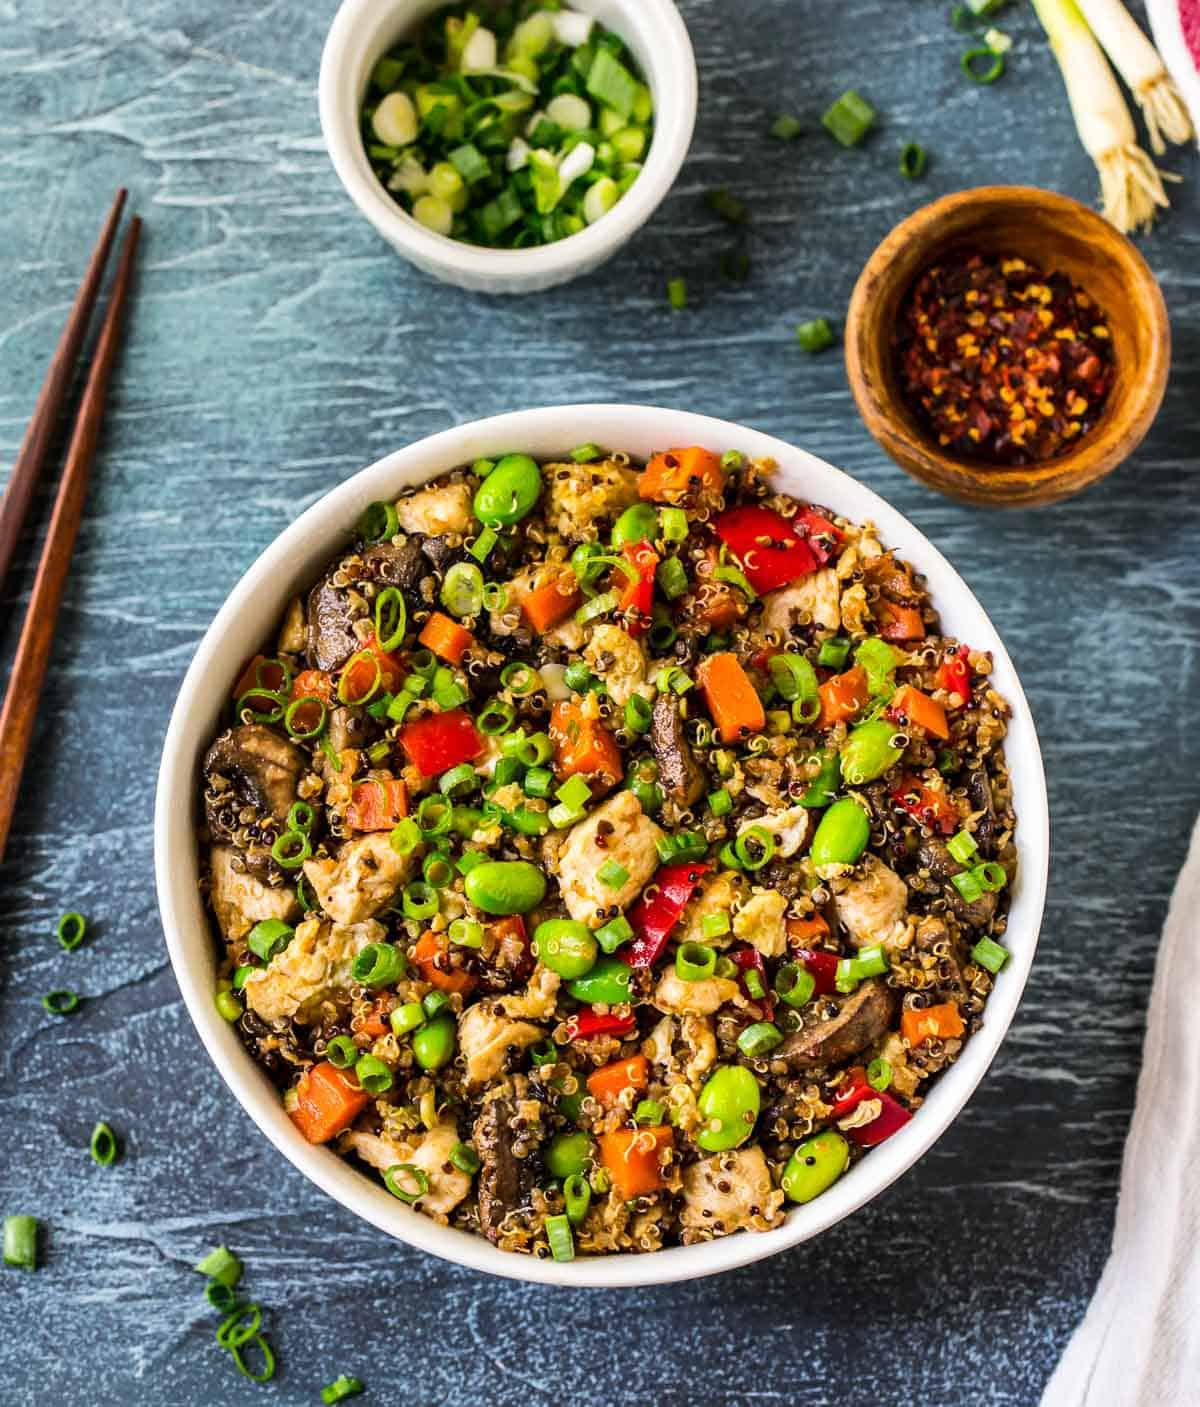 Quinoa-Fried-with-chicken-and-veggies-